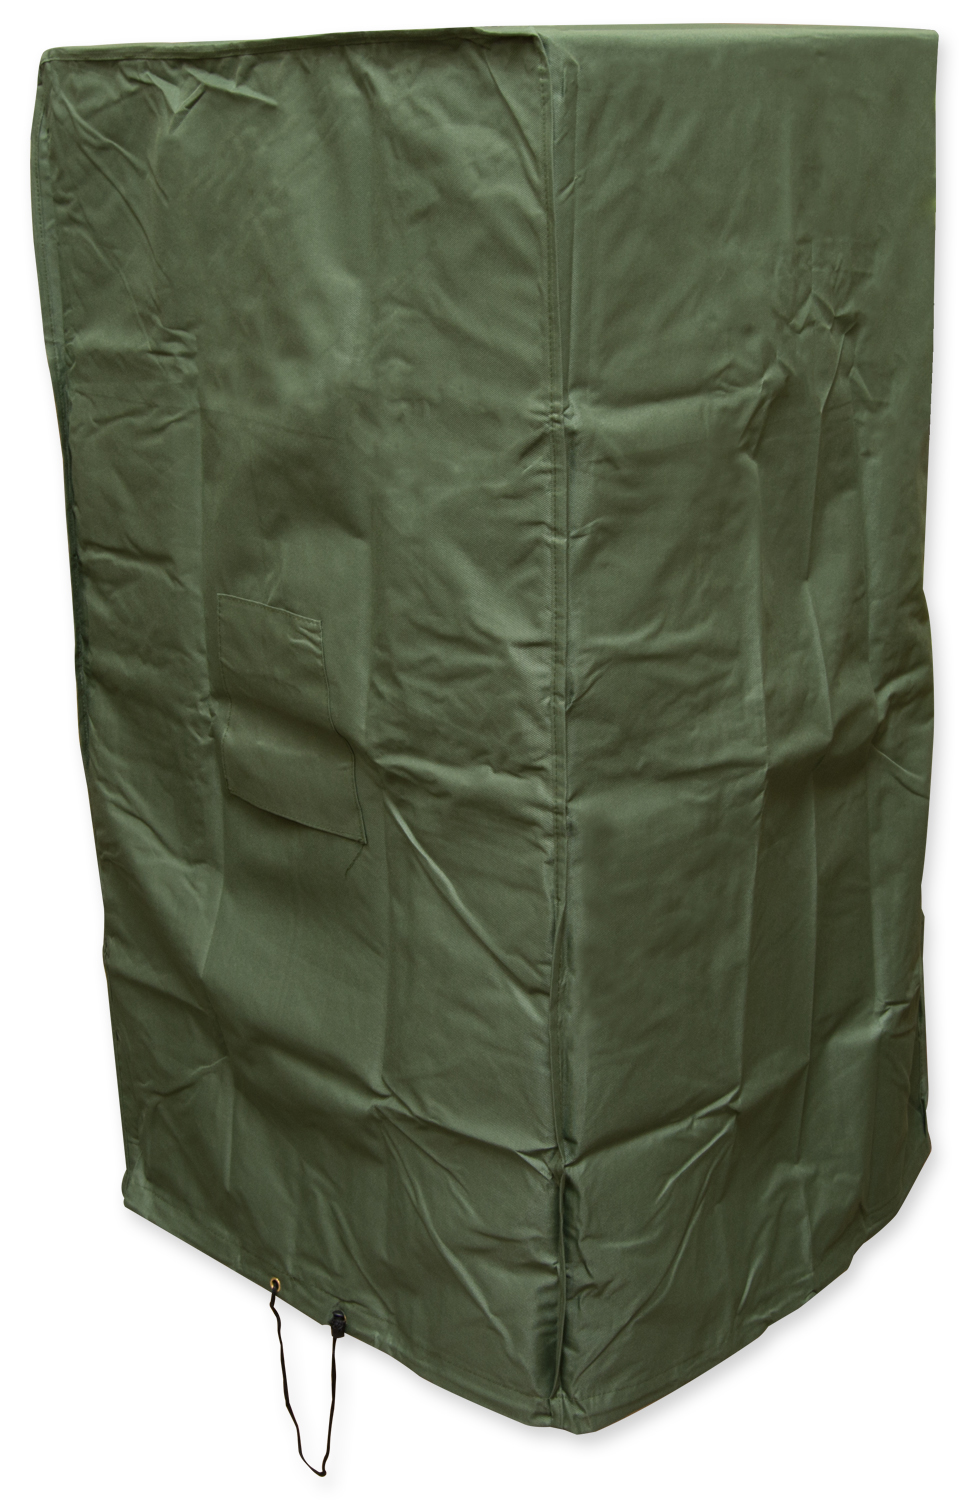 Oxbridge Stacking Chair Cover Green Covers Outdoor Value